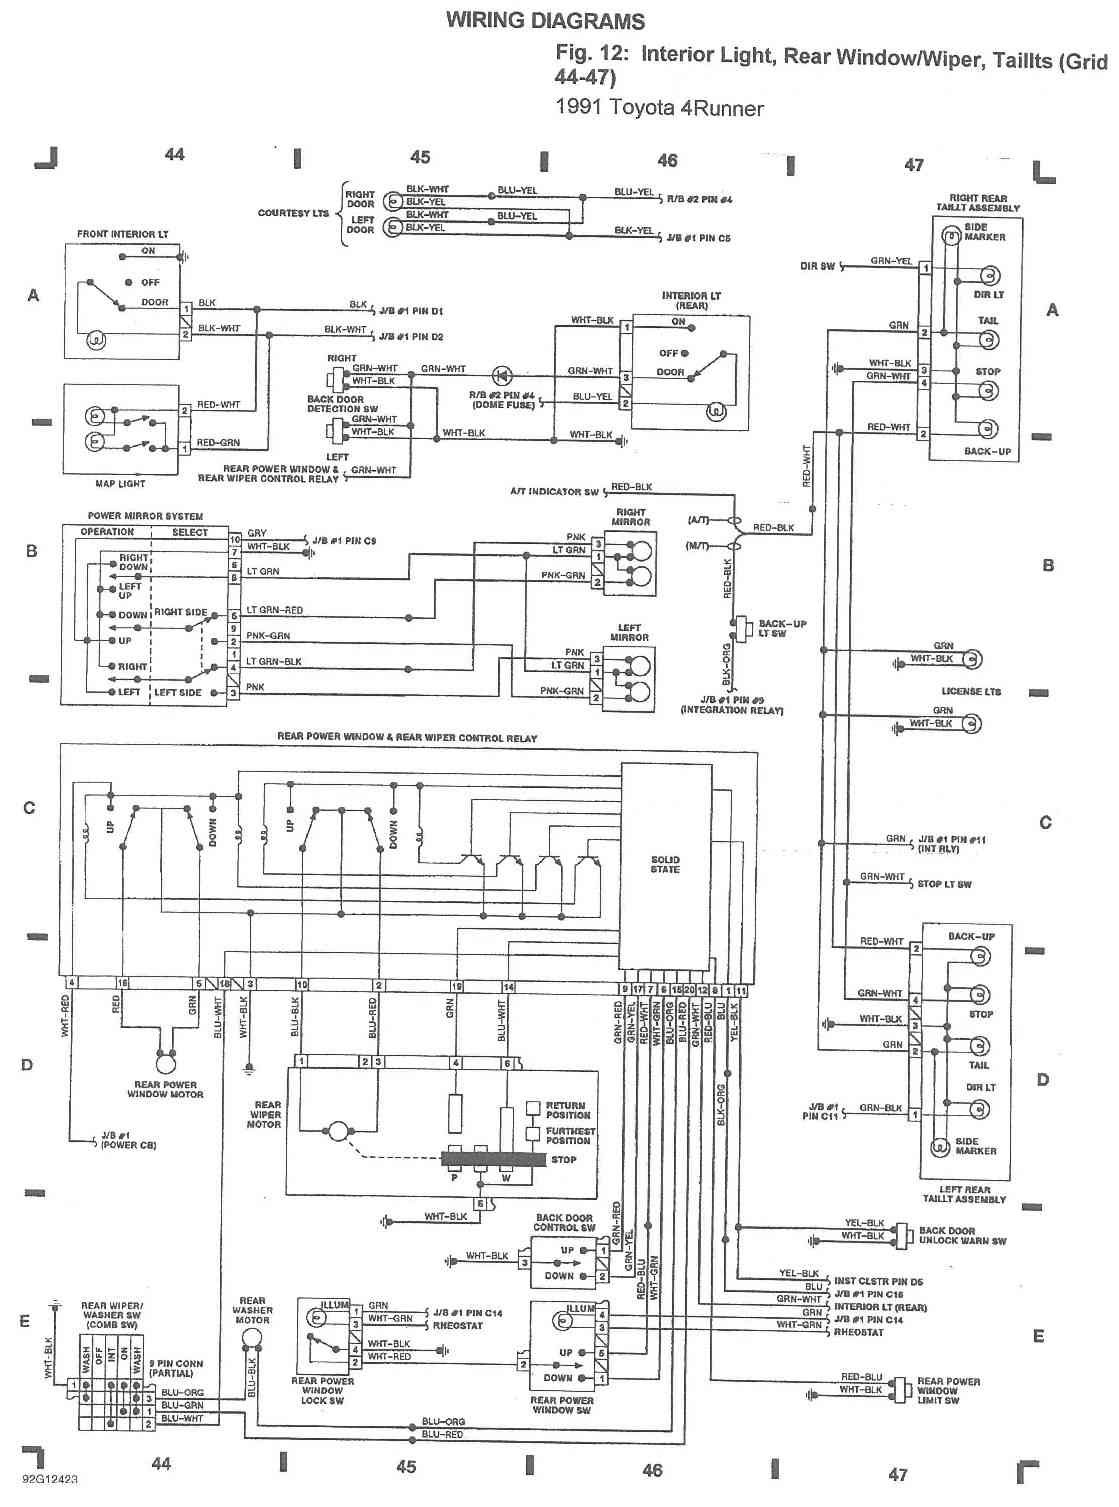 RearWindow91 toyota 4runner wiring diagram toyota 4runner sensor \u2022 wiring on 2005 4runner wiring diagram